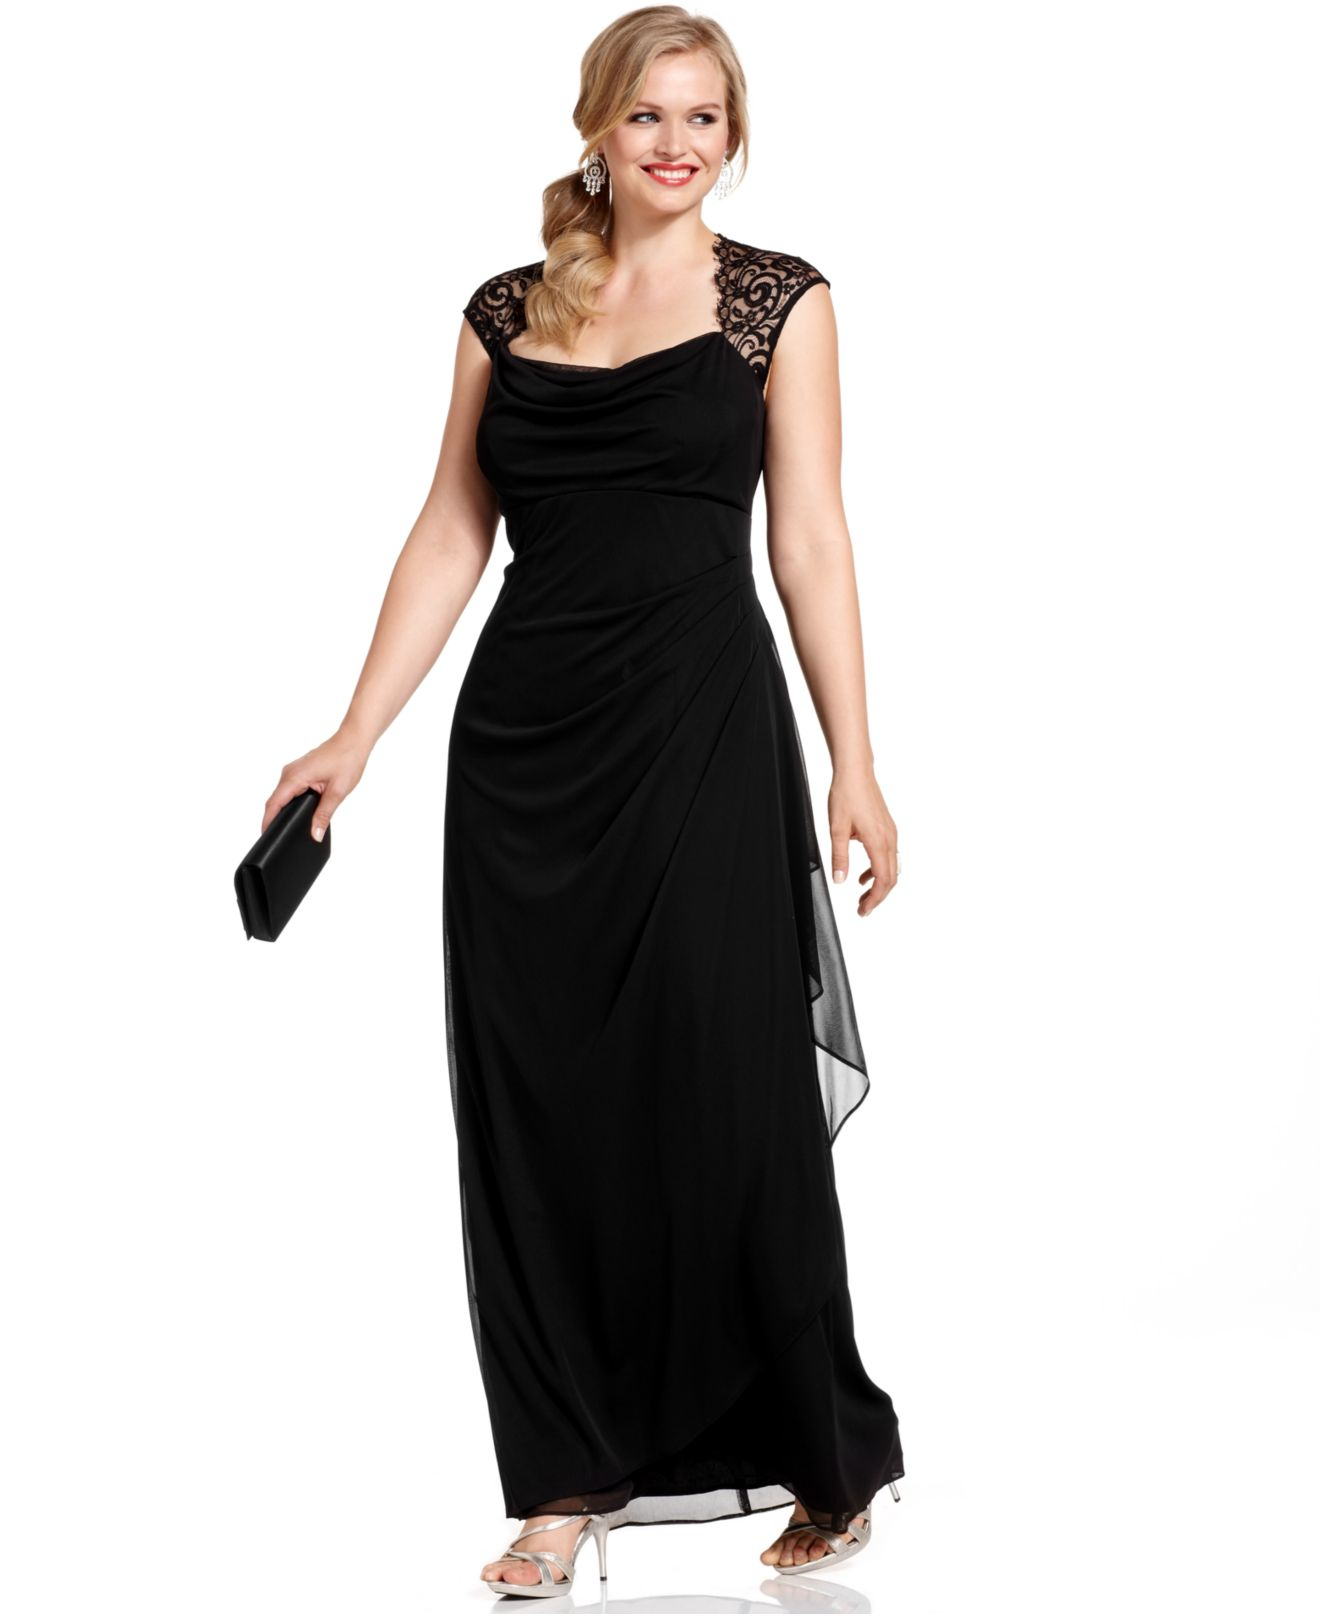 Xscape Plus Size Dress, Cap-Sleeve Lace Ruffled Gown in Black | Lyst